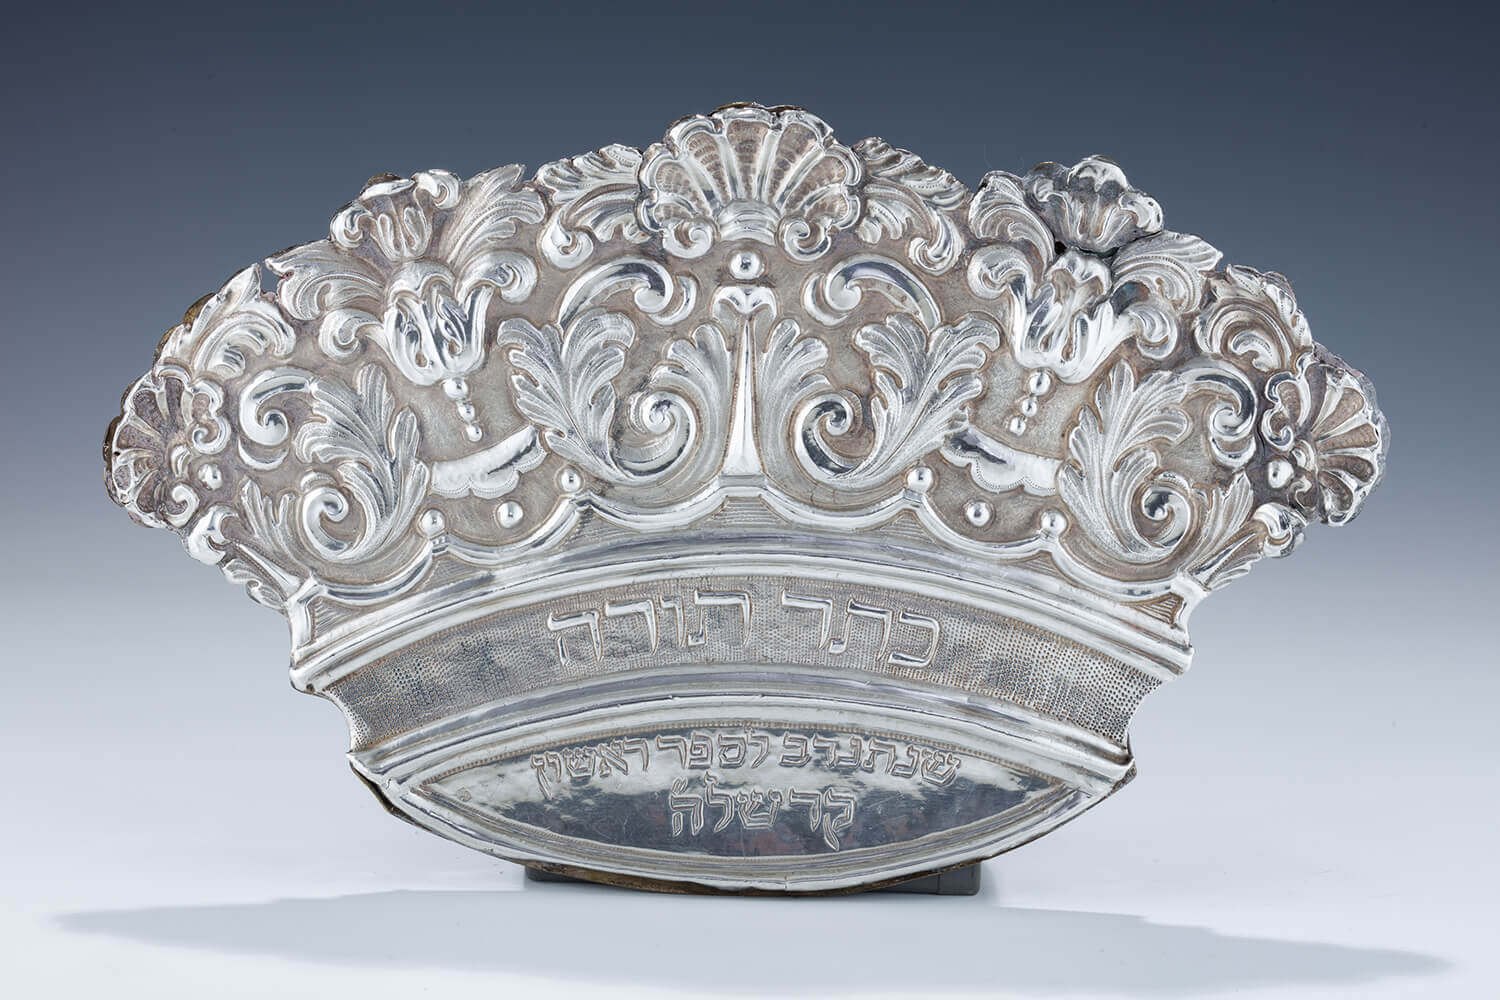 085. A RARE AND IMPORTANT SILVER TORAH SHIELD BY PAOLO RUZZOLI